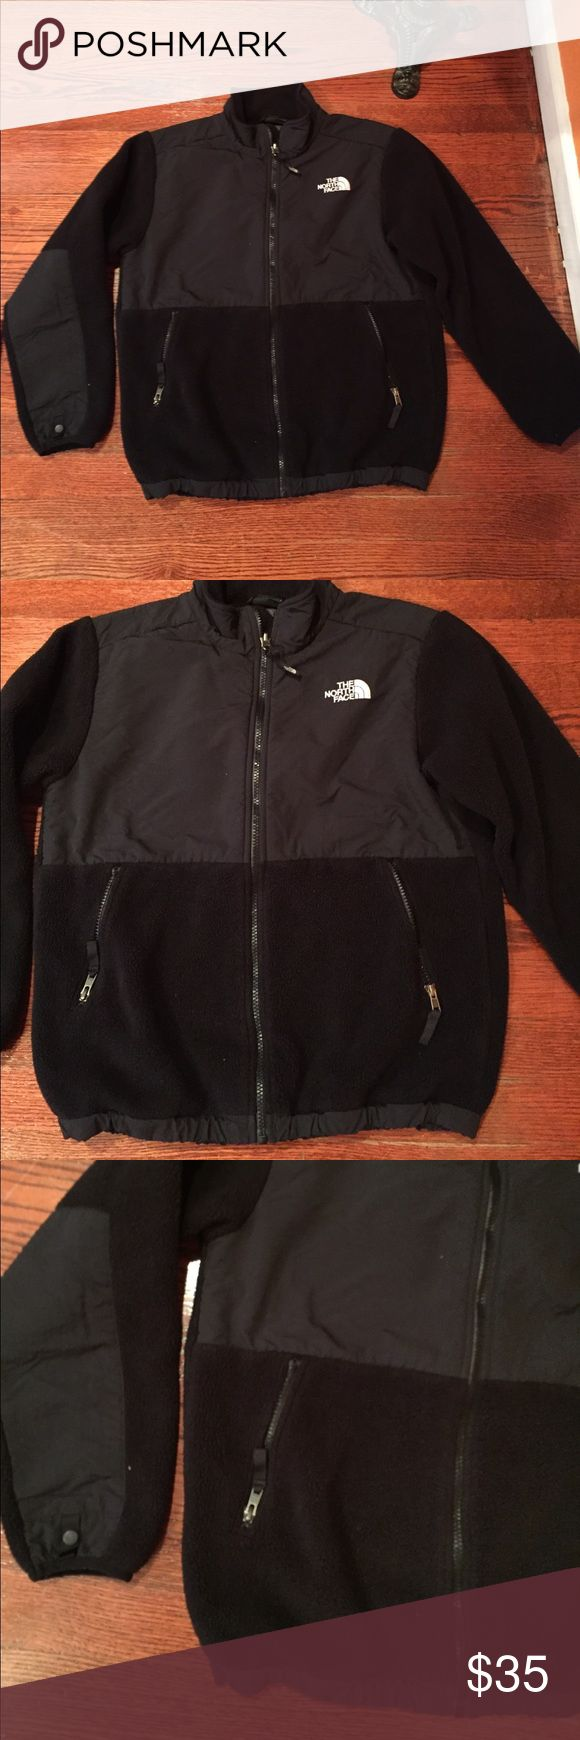 Boys north face jacket Good condition The North Face Jackets & Coats